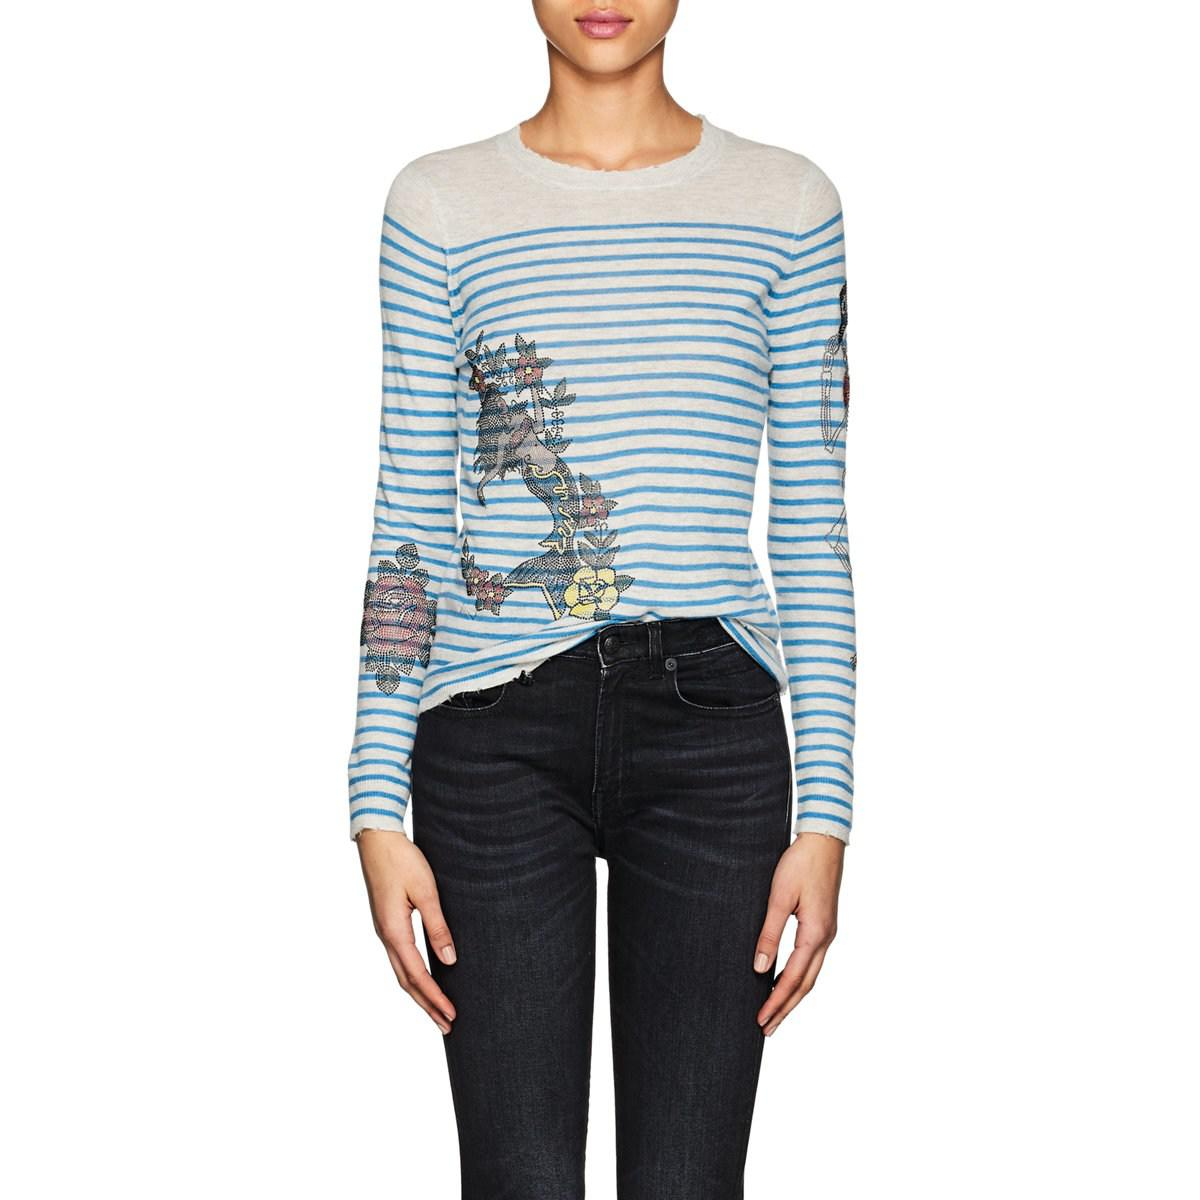 3d5a0a99831204 Zadig & Voltaire Miss Striped Cashmere Sweater in Blue - Lyst